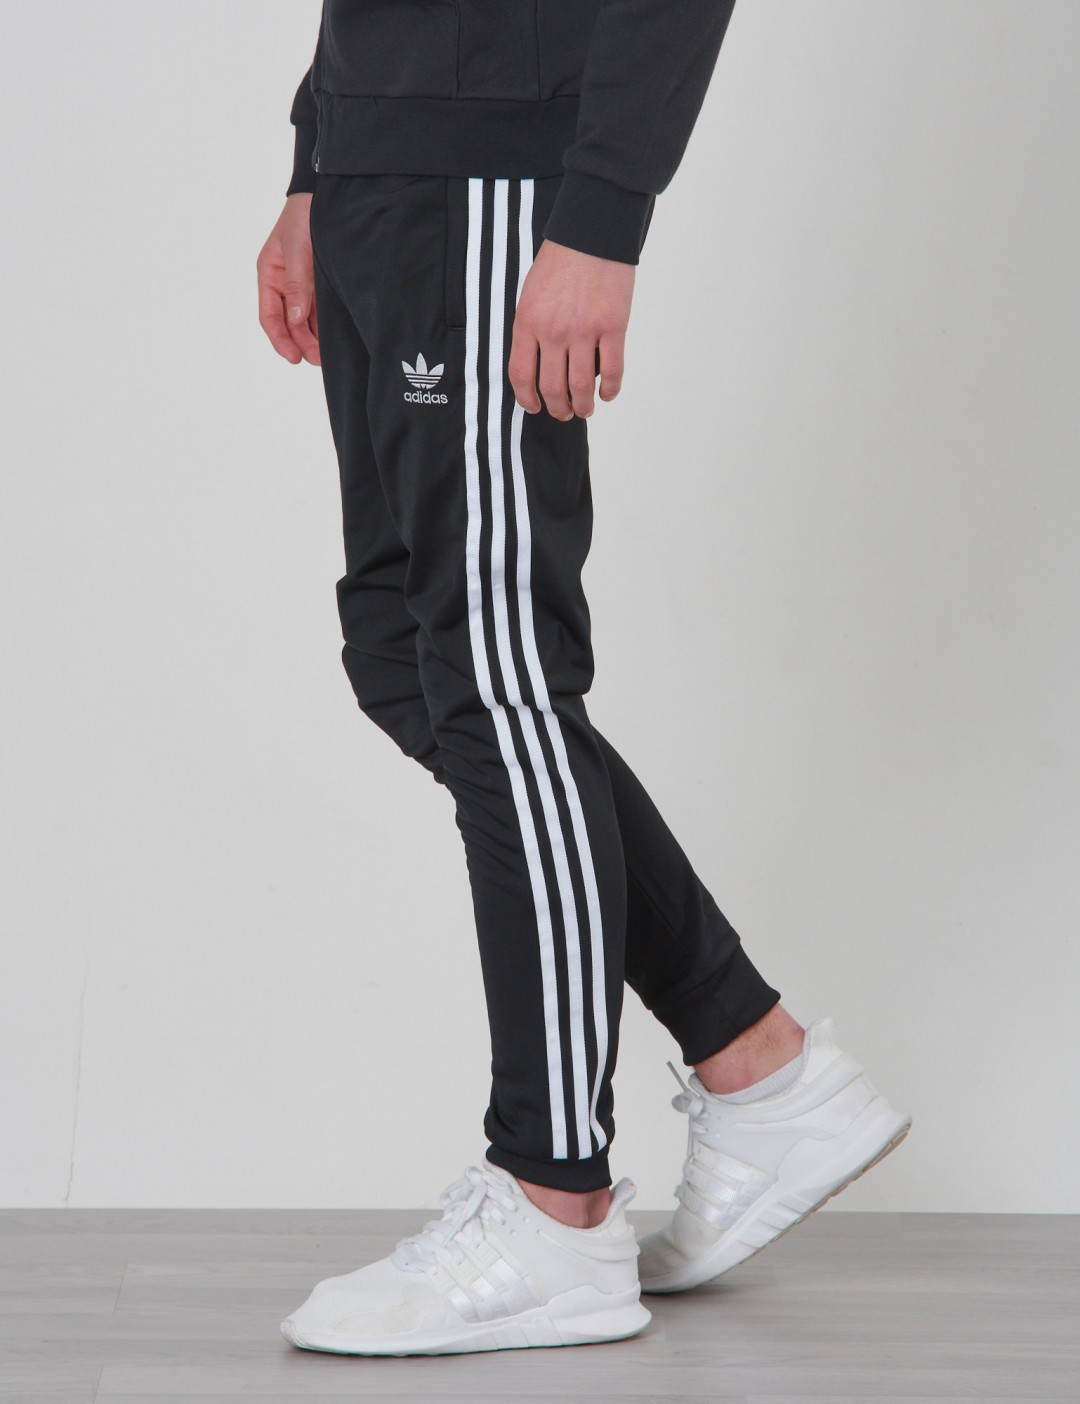 detailing fd32e 26d75 Adidas Originals - SUPERSTAR PANTS Adidas Originals - SUPERSTAR PANTS ...